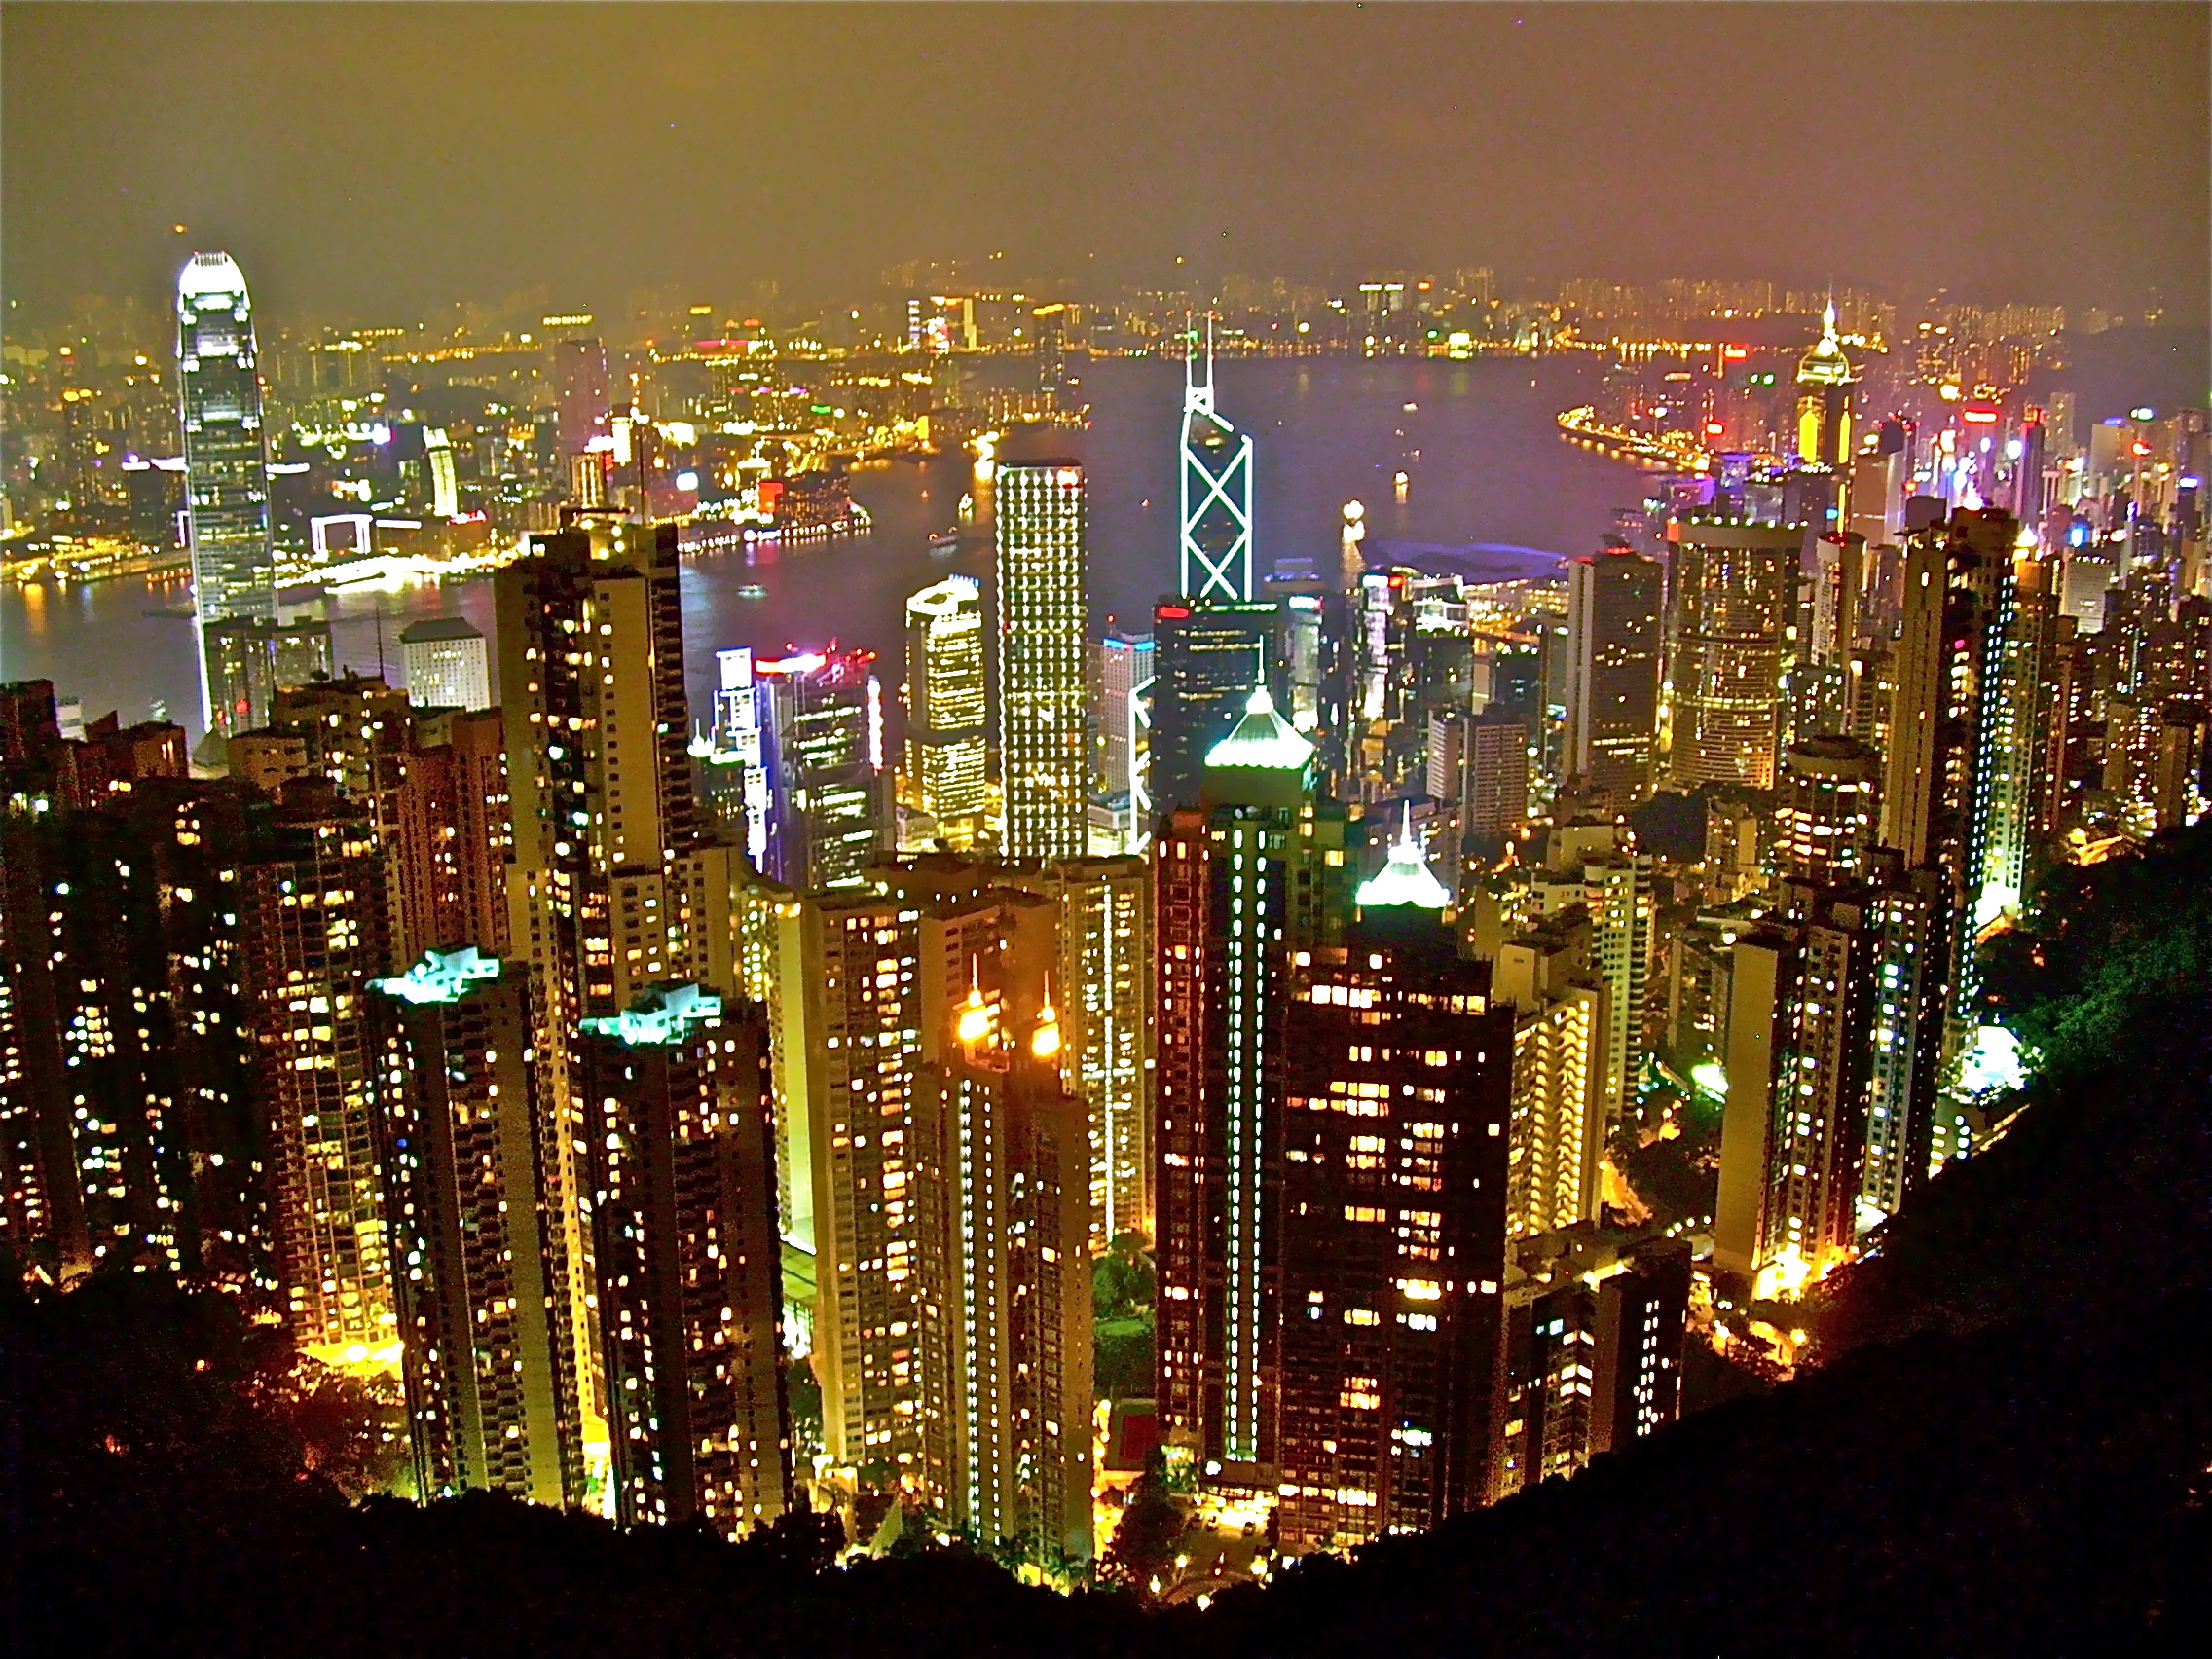 Shaping Our Future City campaign inspires young people in Hong Kong